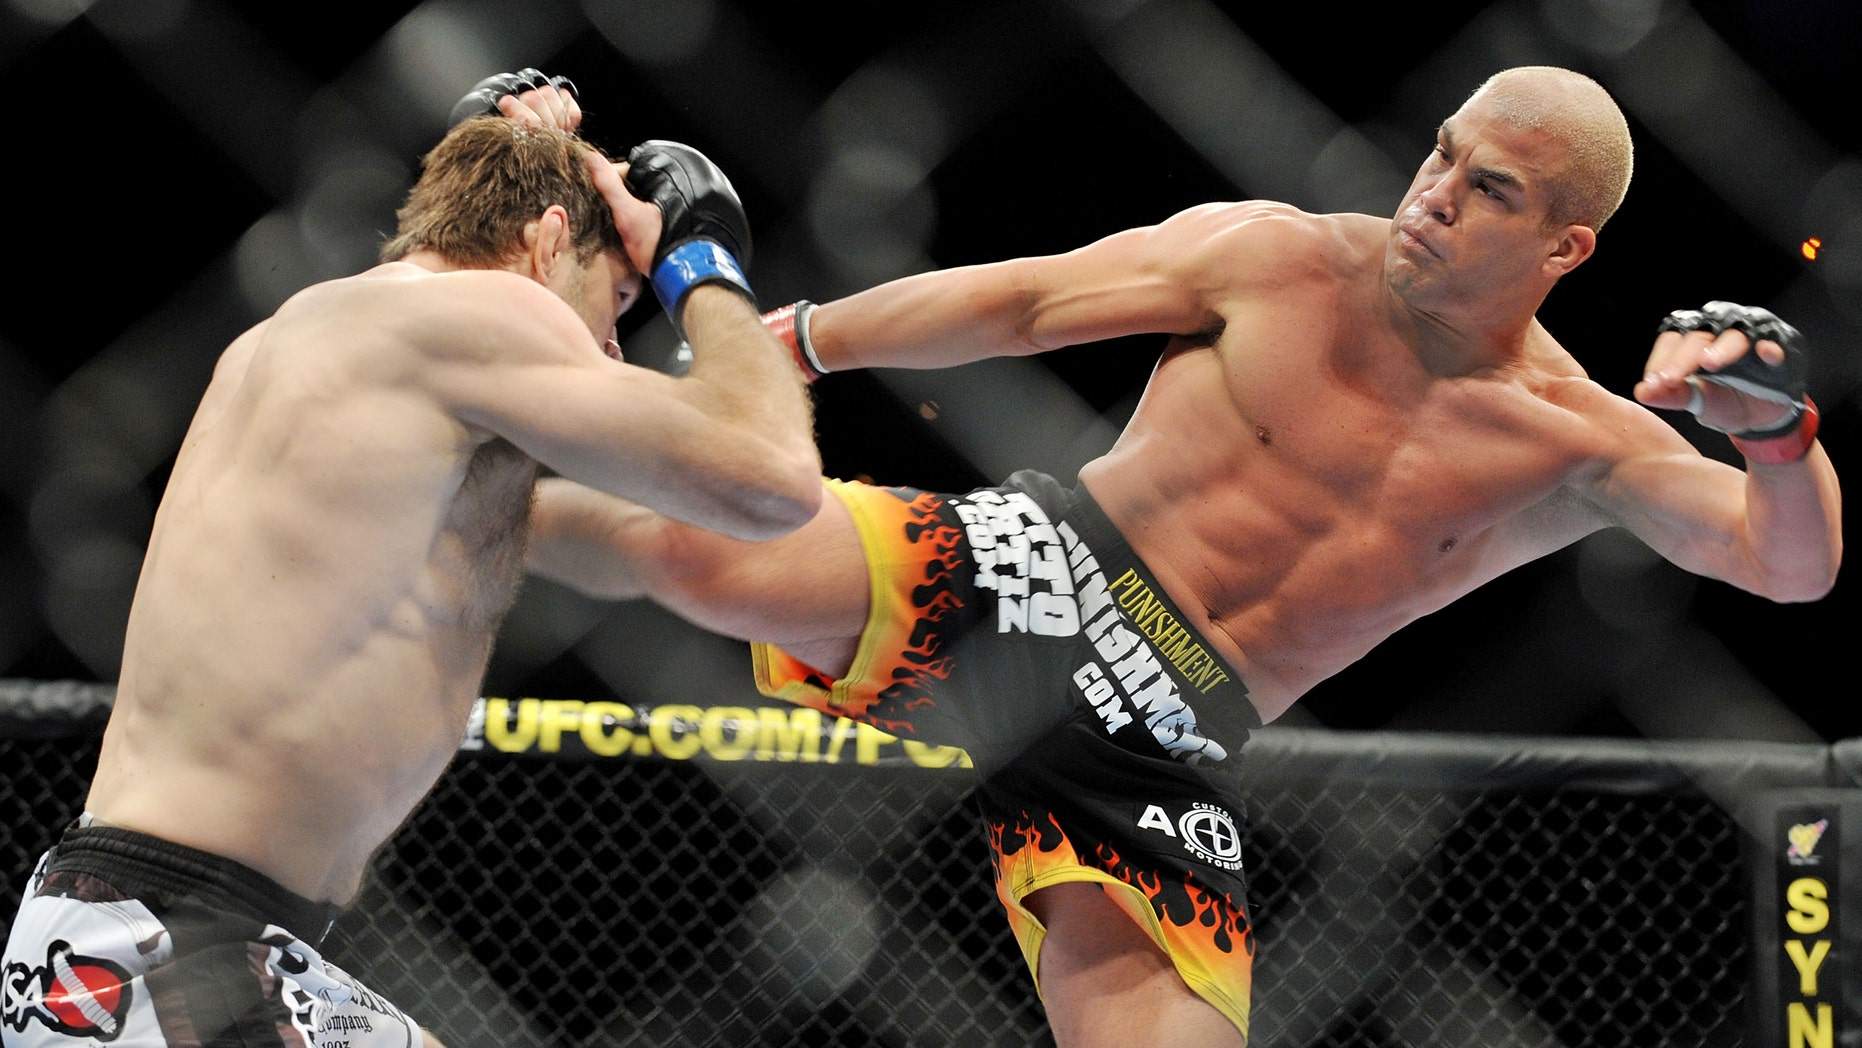 Tito Ortiz (R) battles Forrest Griffin during their Light Heavyweight Fight at the UFC 106 in 2009 in Las Vegas, Nevada.